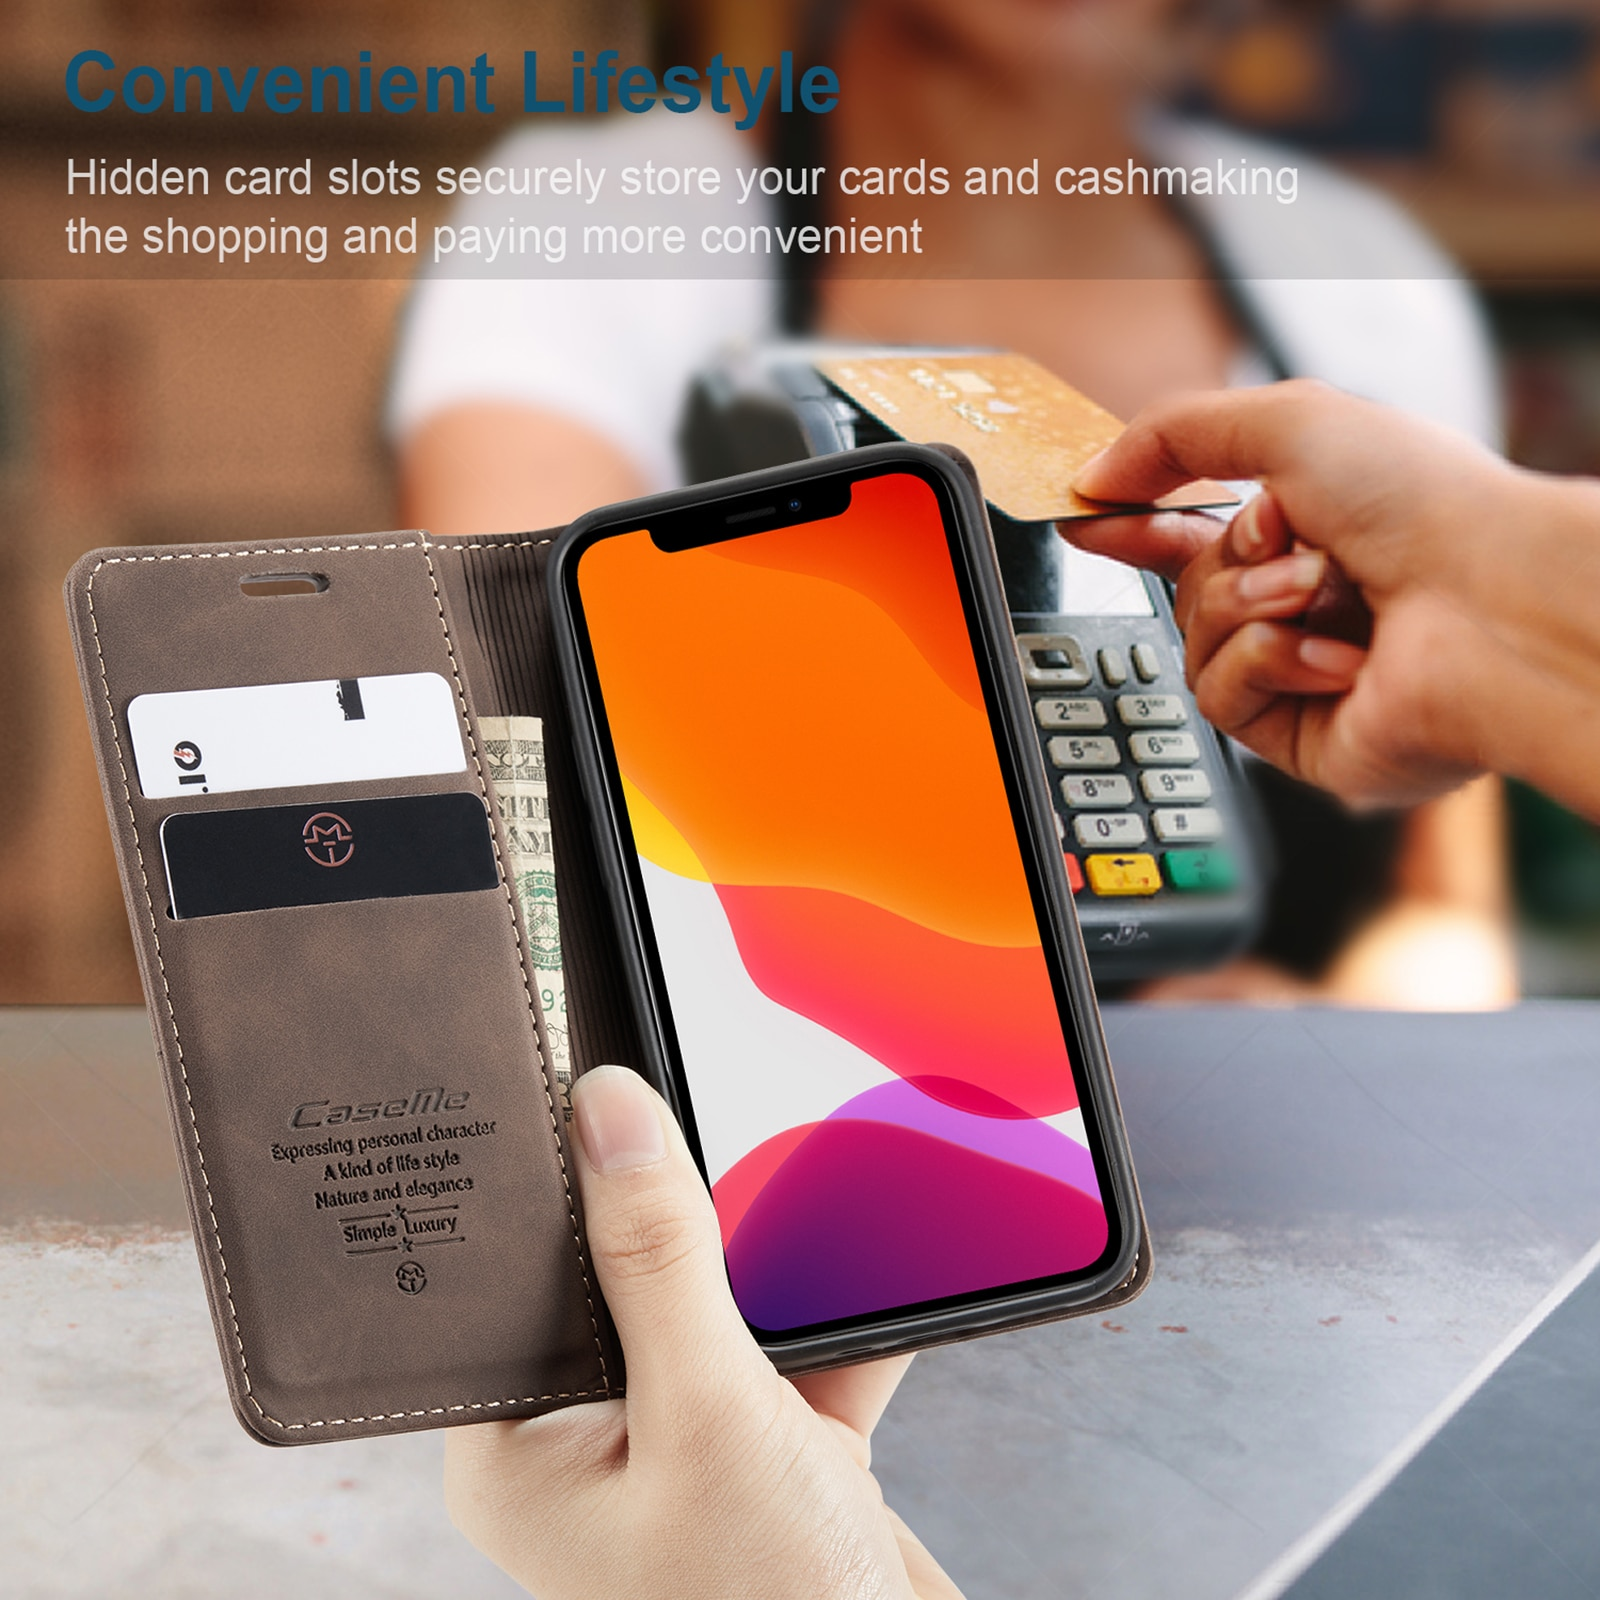 H84239f3c768f41c0b875aad5e0dd1e59d - Magnetic Leather Flip Case For iPhone 12 / Pro / Pro Max PU Leather Fitted Bumper Soft Retro Flip Case Book Wallet Cover